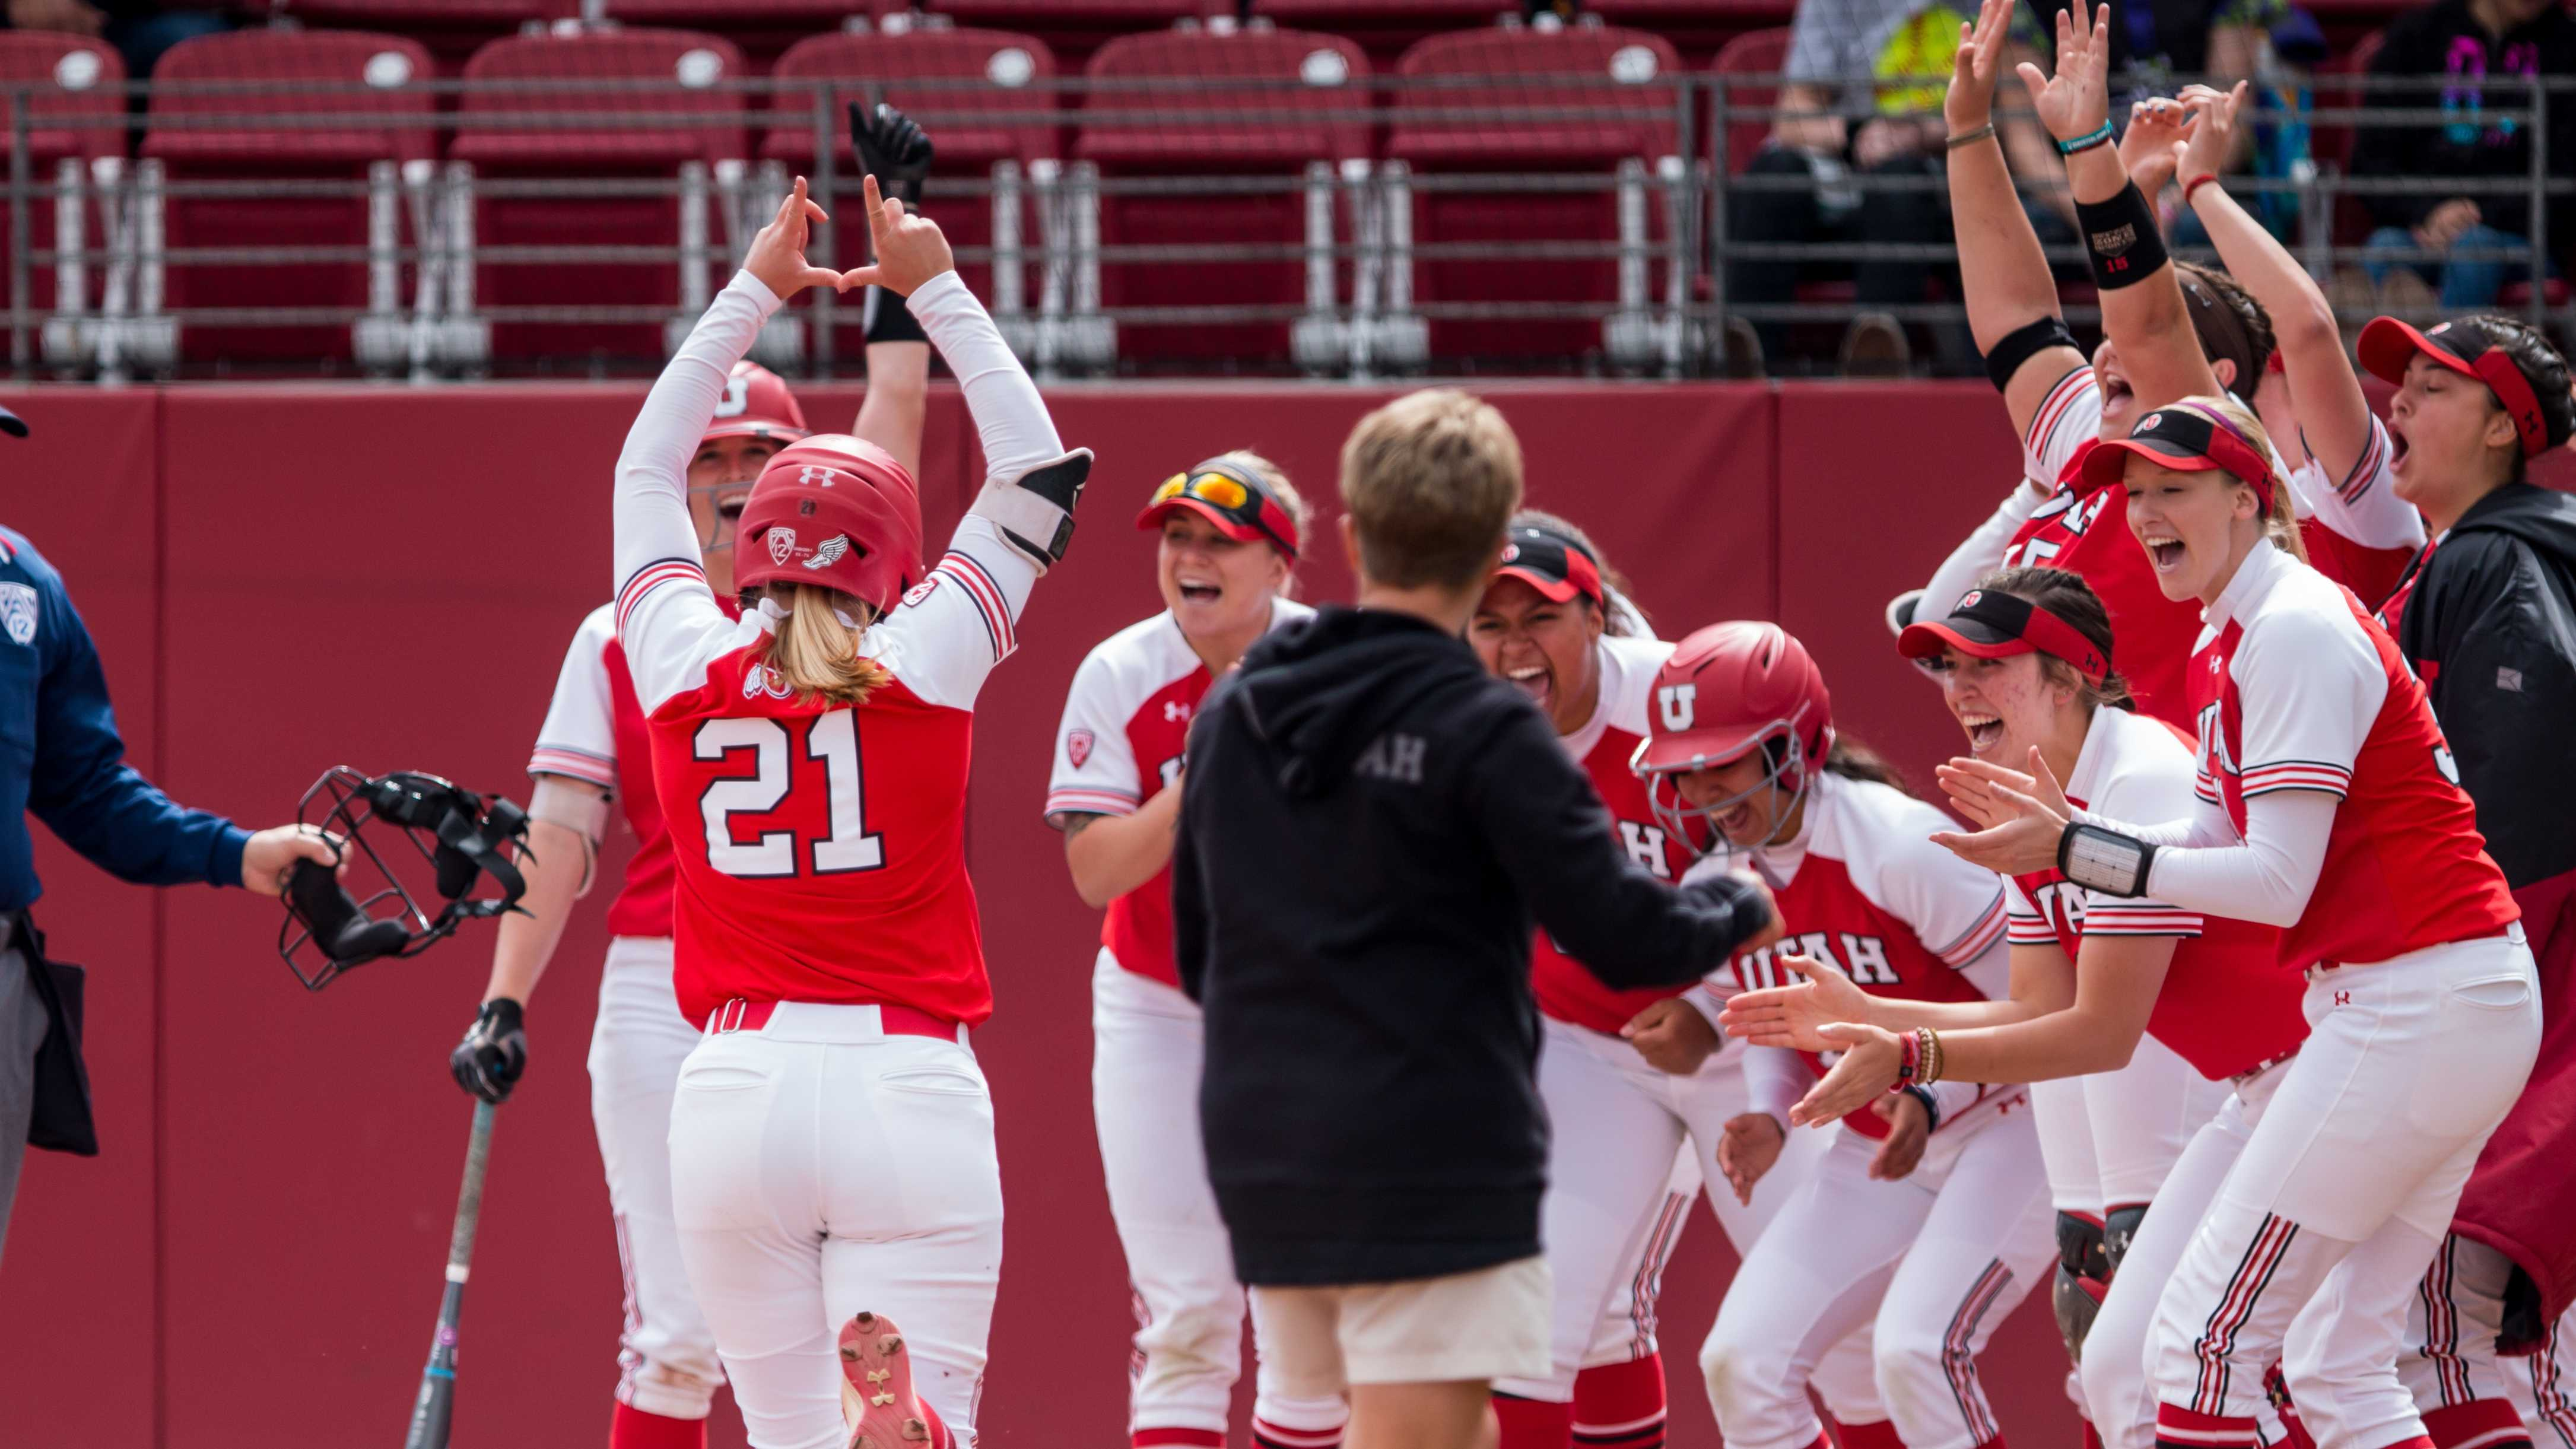 The University of Utah Softball Team cheered as University of Utah senior outfielder Ally Dickman (21) hit a homerun in an NCAA Softball game vs. Arizona at Dumke Family Softball Field in Salt Lake City, UT on Saturday April 06, 2019.  (Photo by Curtis Lin | Daily Utah Chronicle)